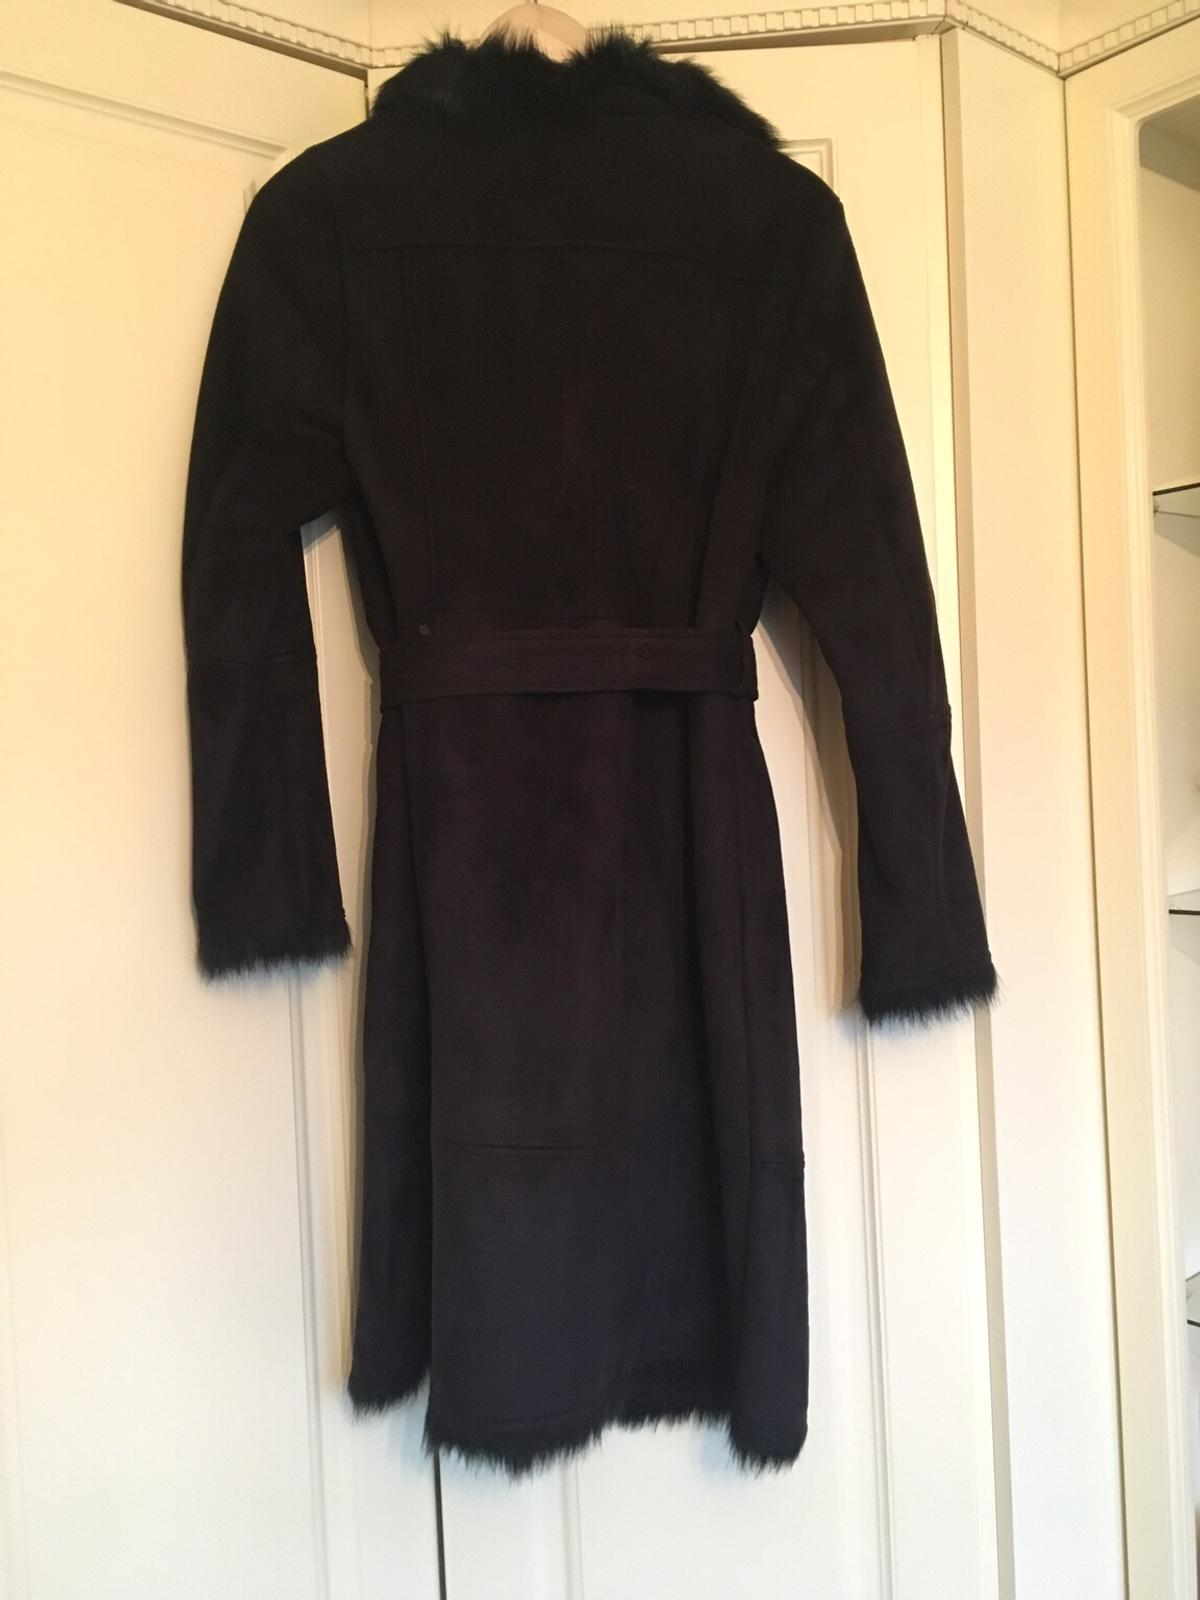 Stunning suede&fur black coat Marks&Spencers Size 10. Original price £119 now selling for amazing £55! Only warn once. This will go fast. Pick up only please.